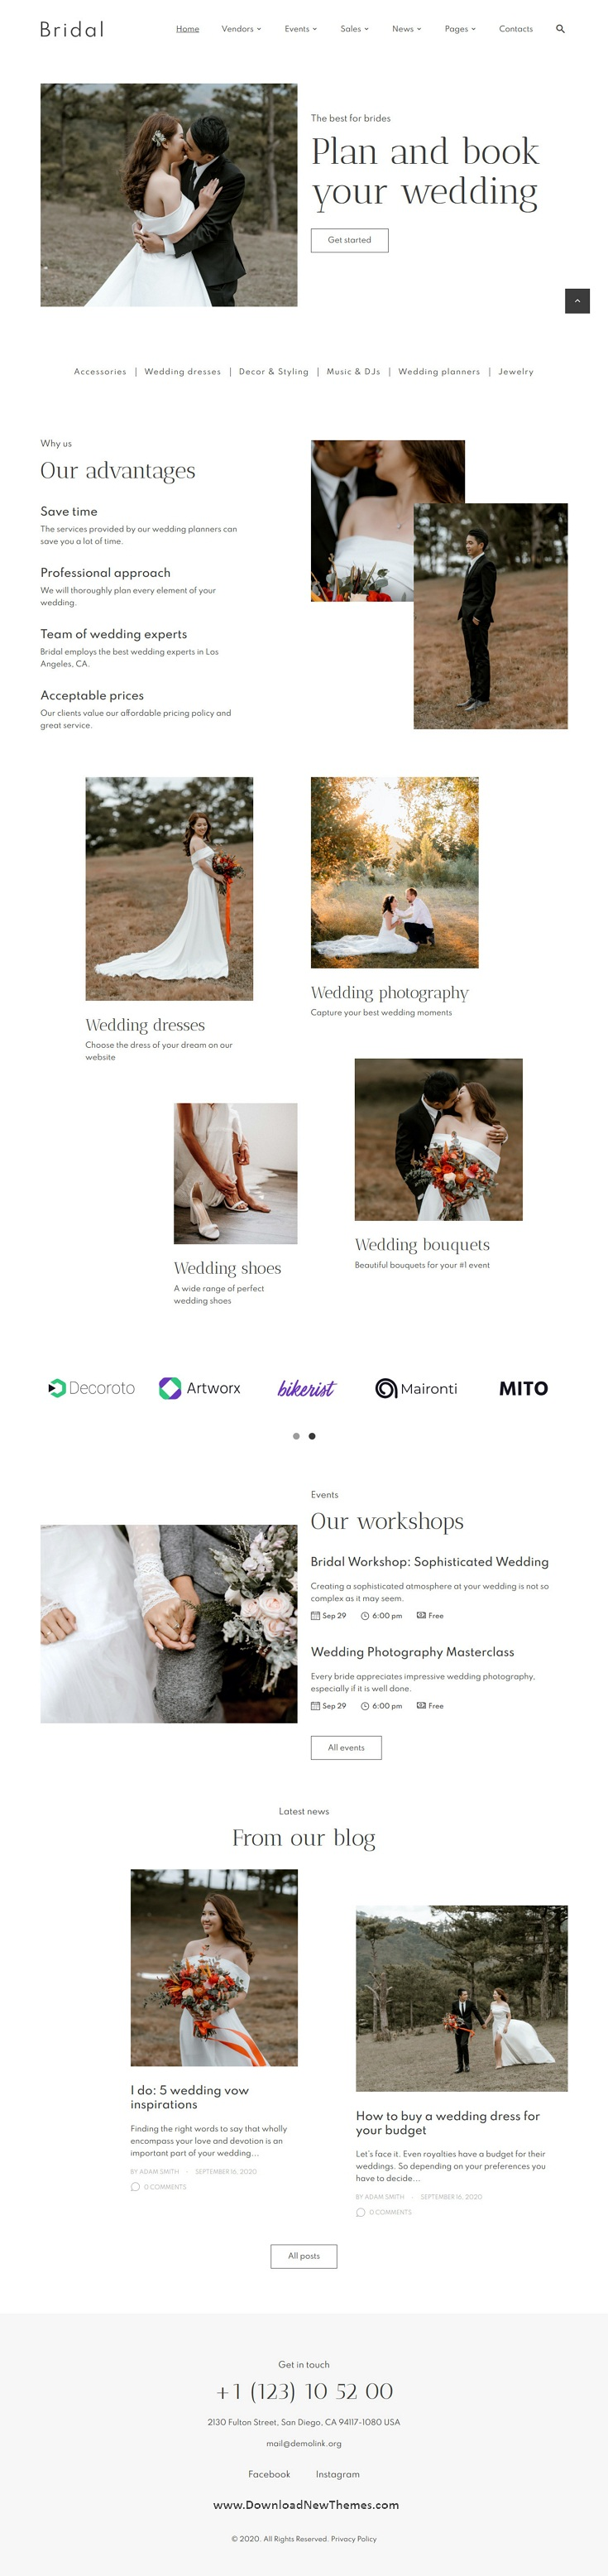 Wedding Planner and Photography Template